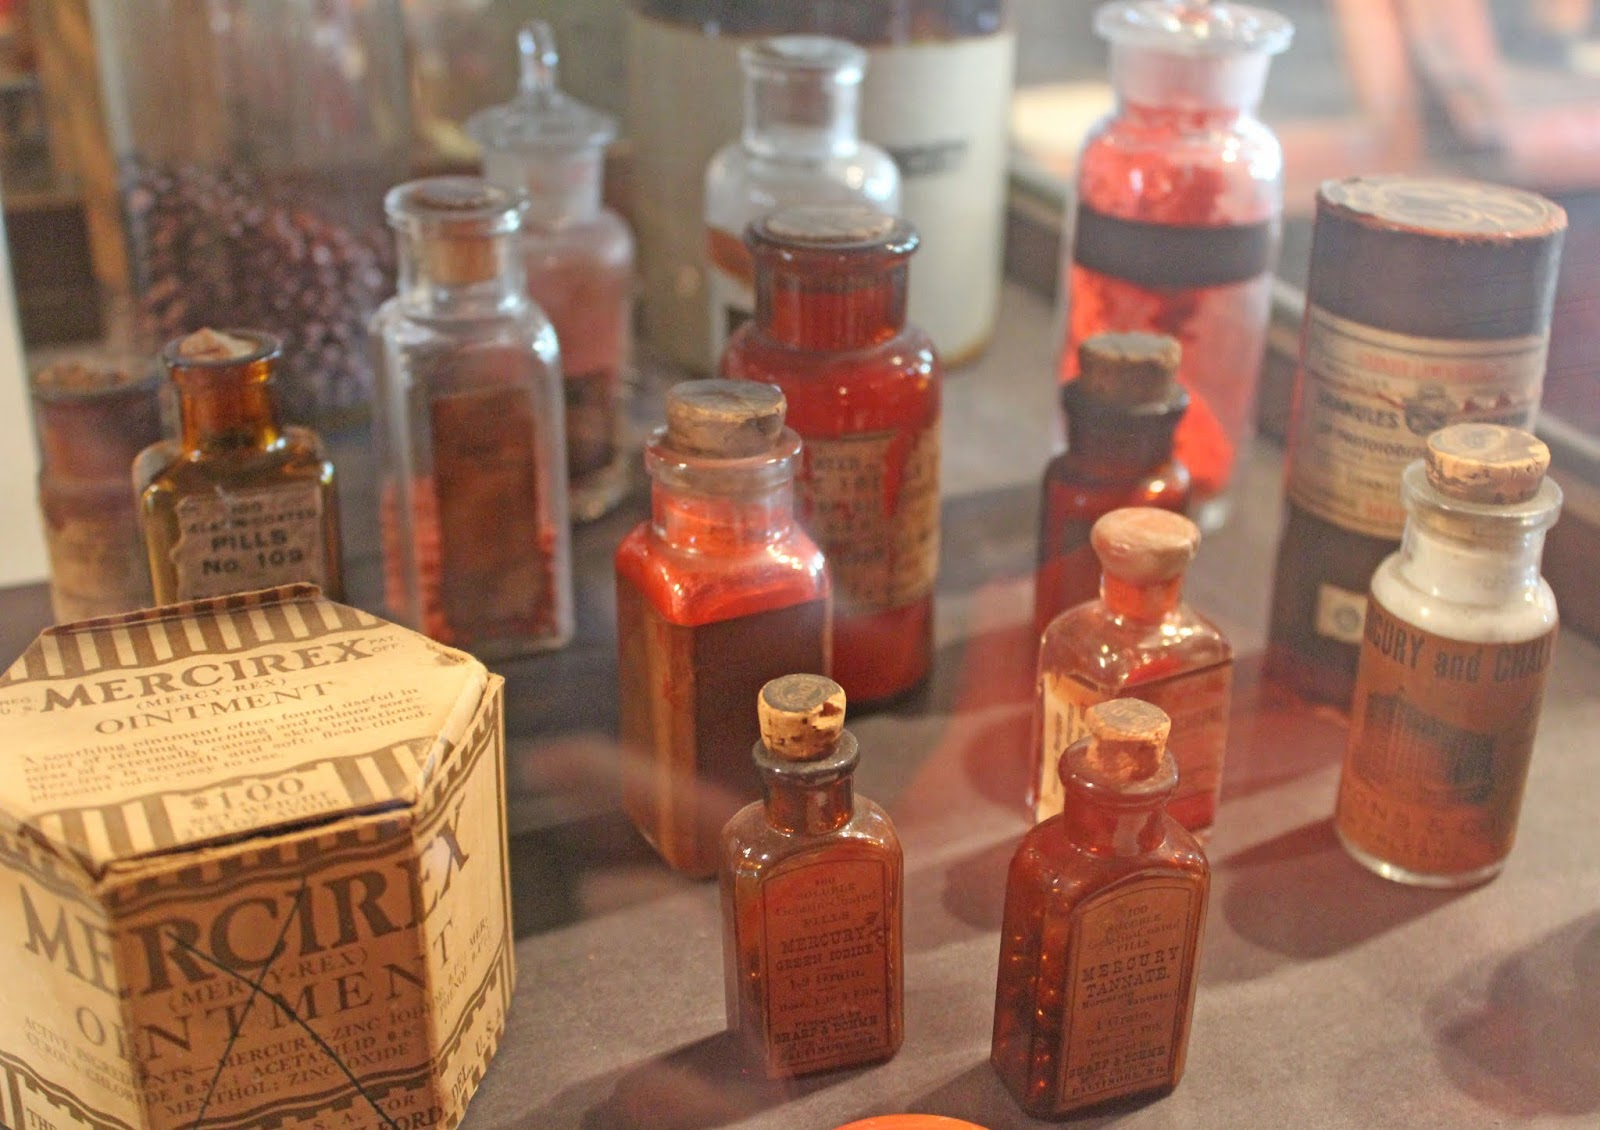 New Orleans pharmacy museum 8